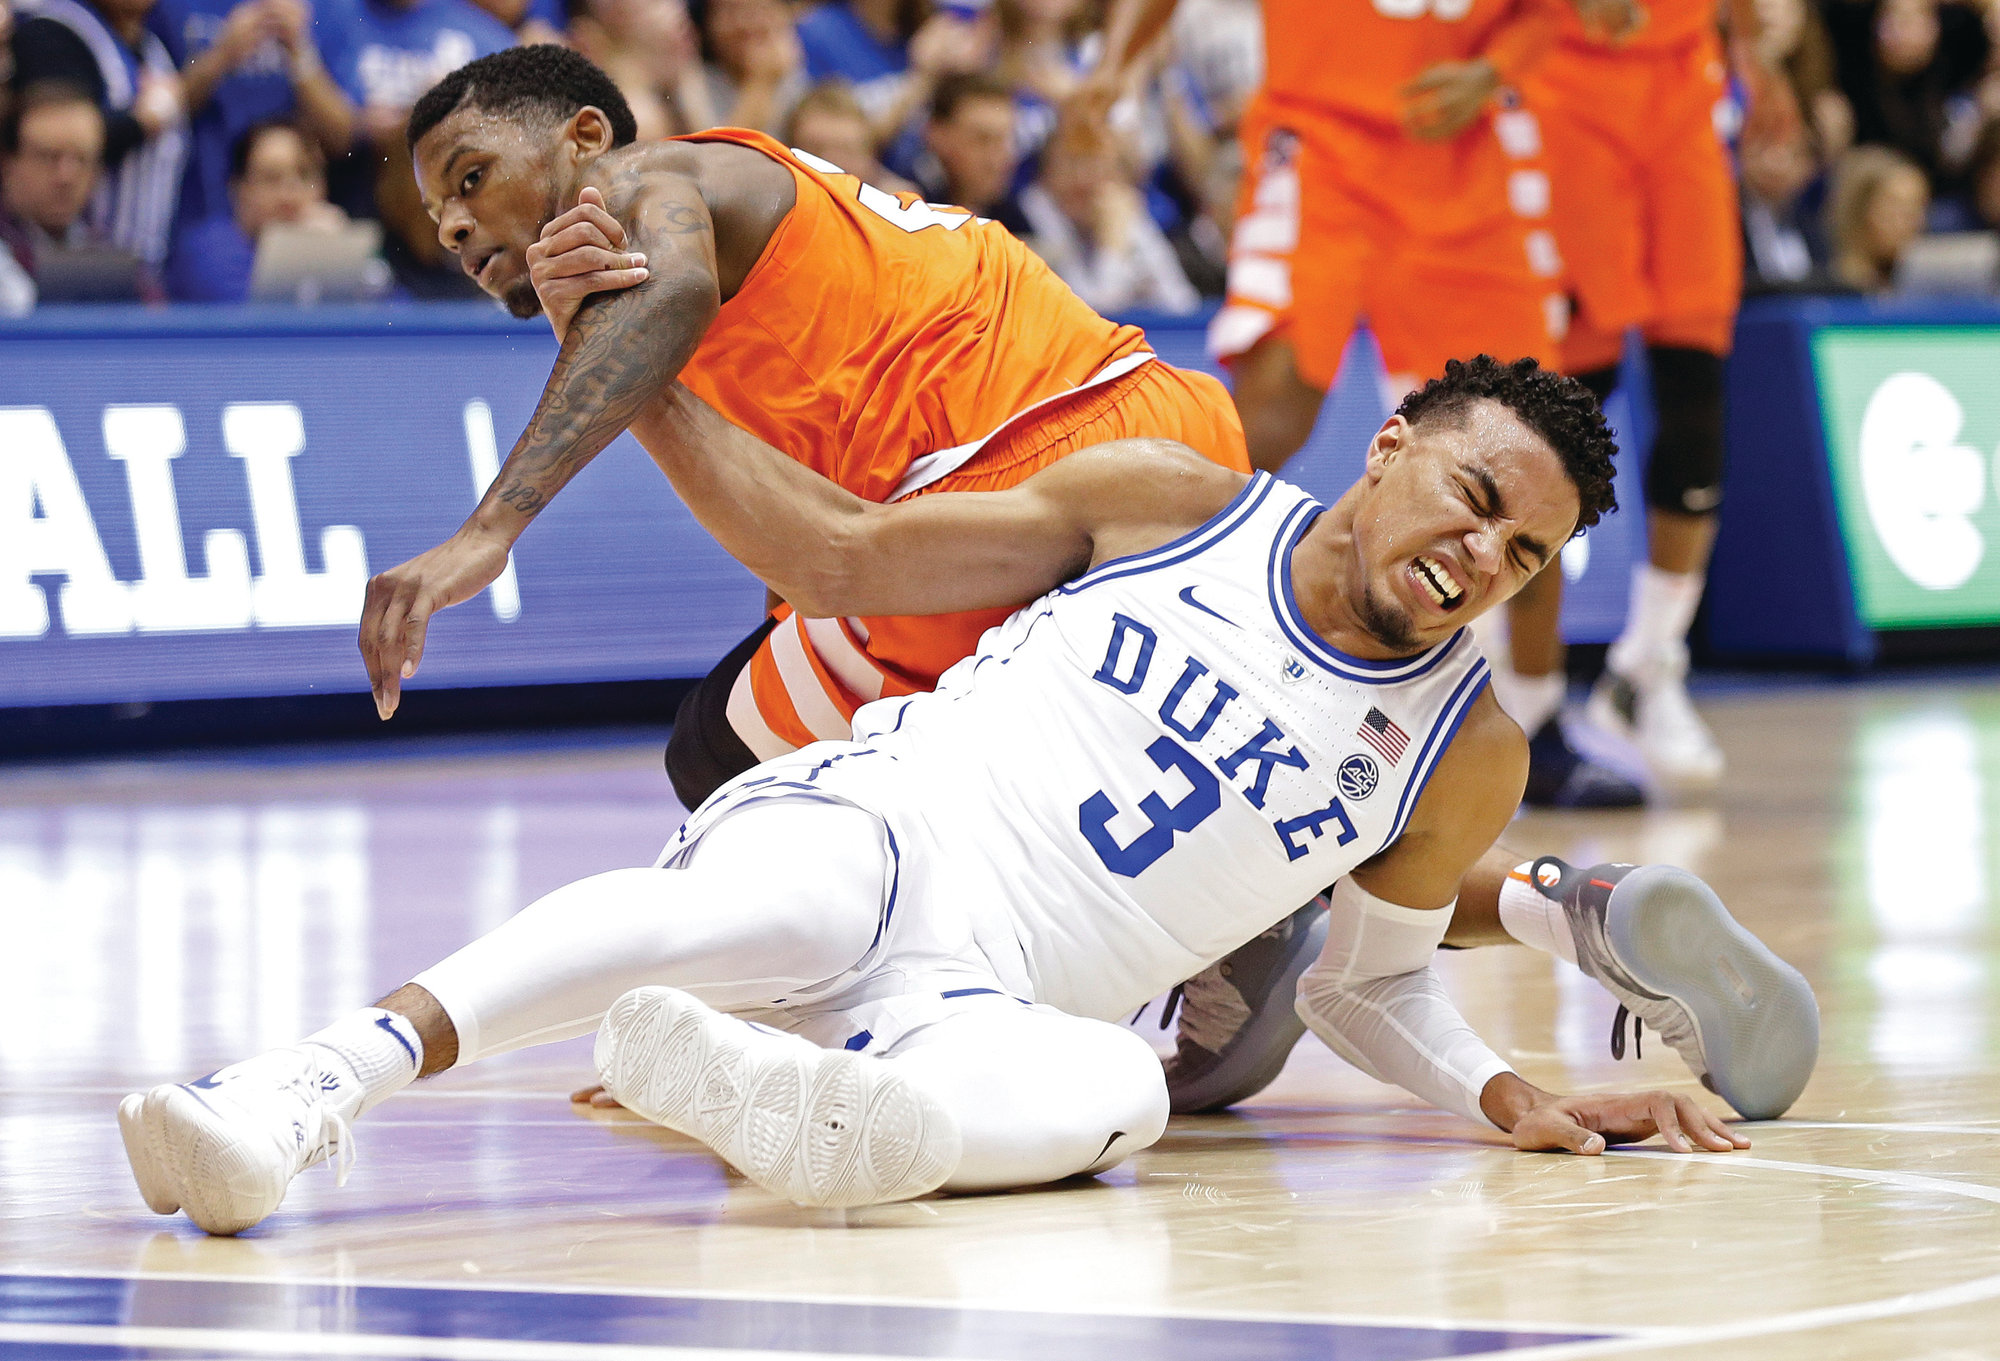 Syracuse Upsets No 1 Duke 95 91 In Ot After Jones Injury The